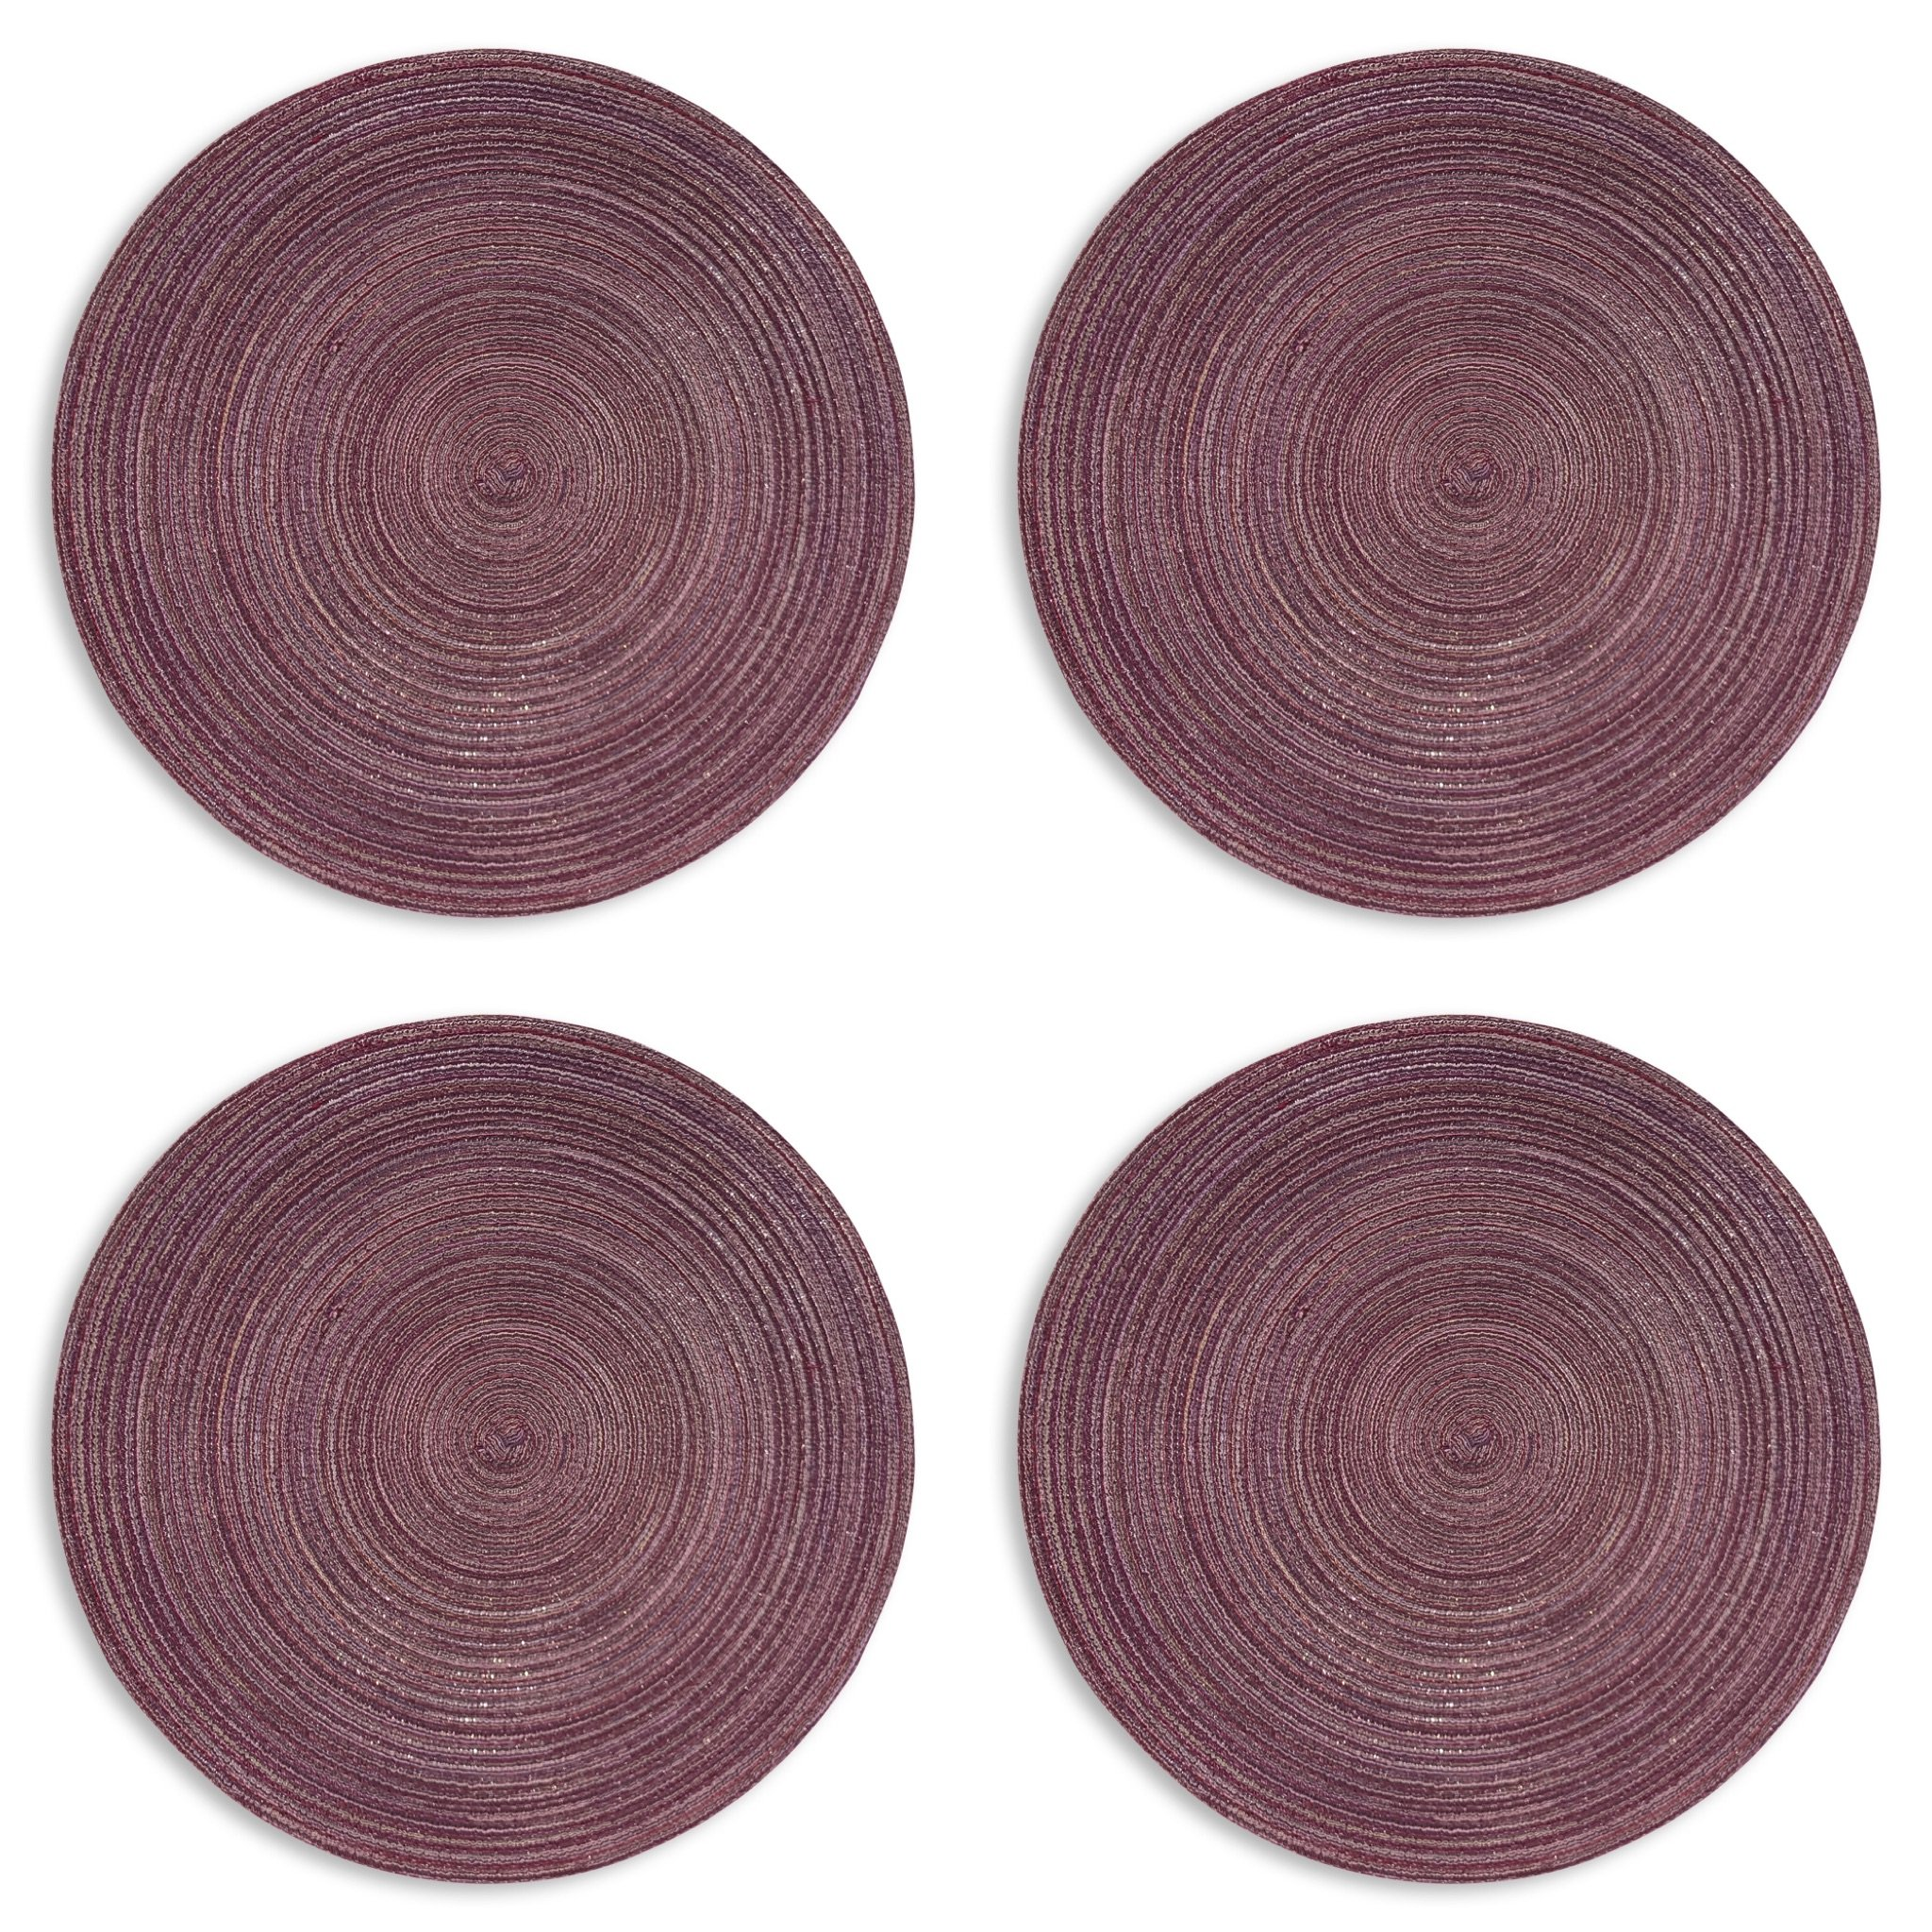 The Everyday Essential Round Placemats, Set of 4, 15 Inch, Fine Polyester Fabric, Machine Wash, By Whole House Worlds